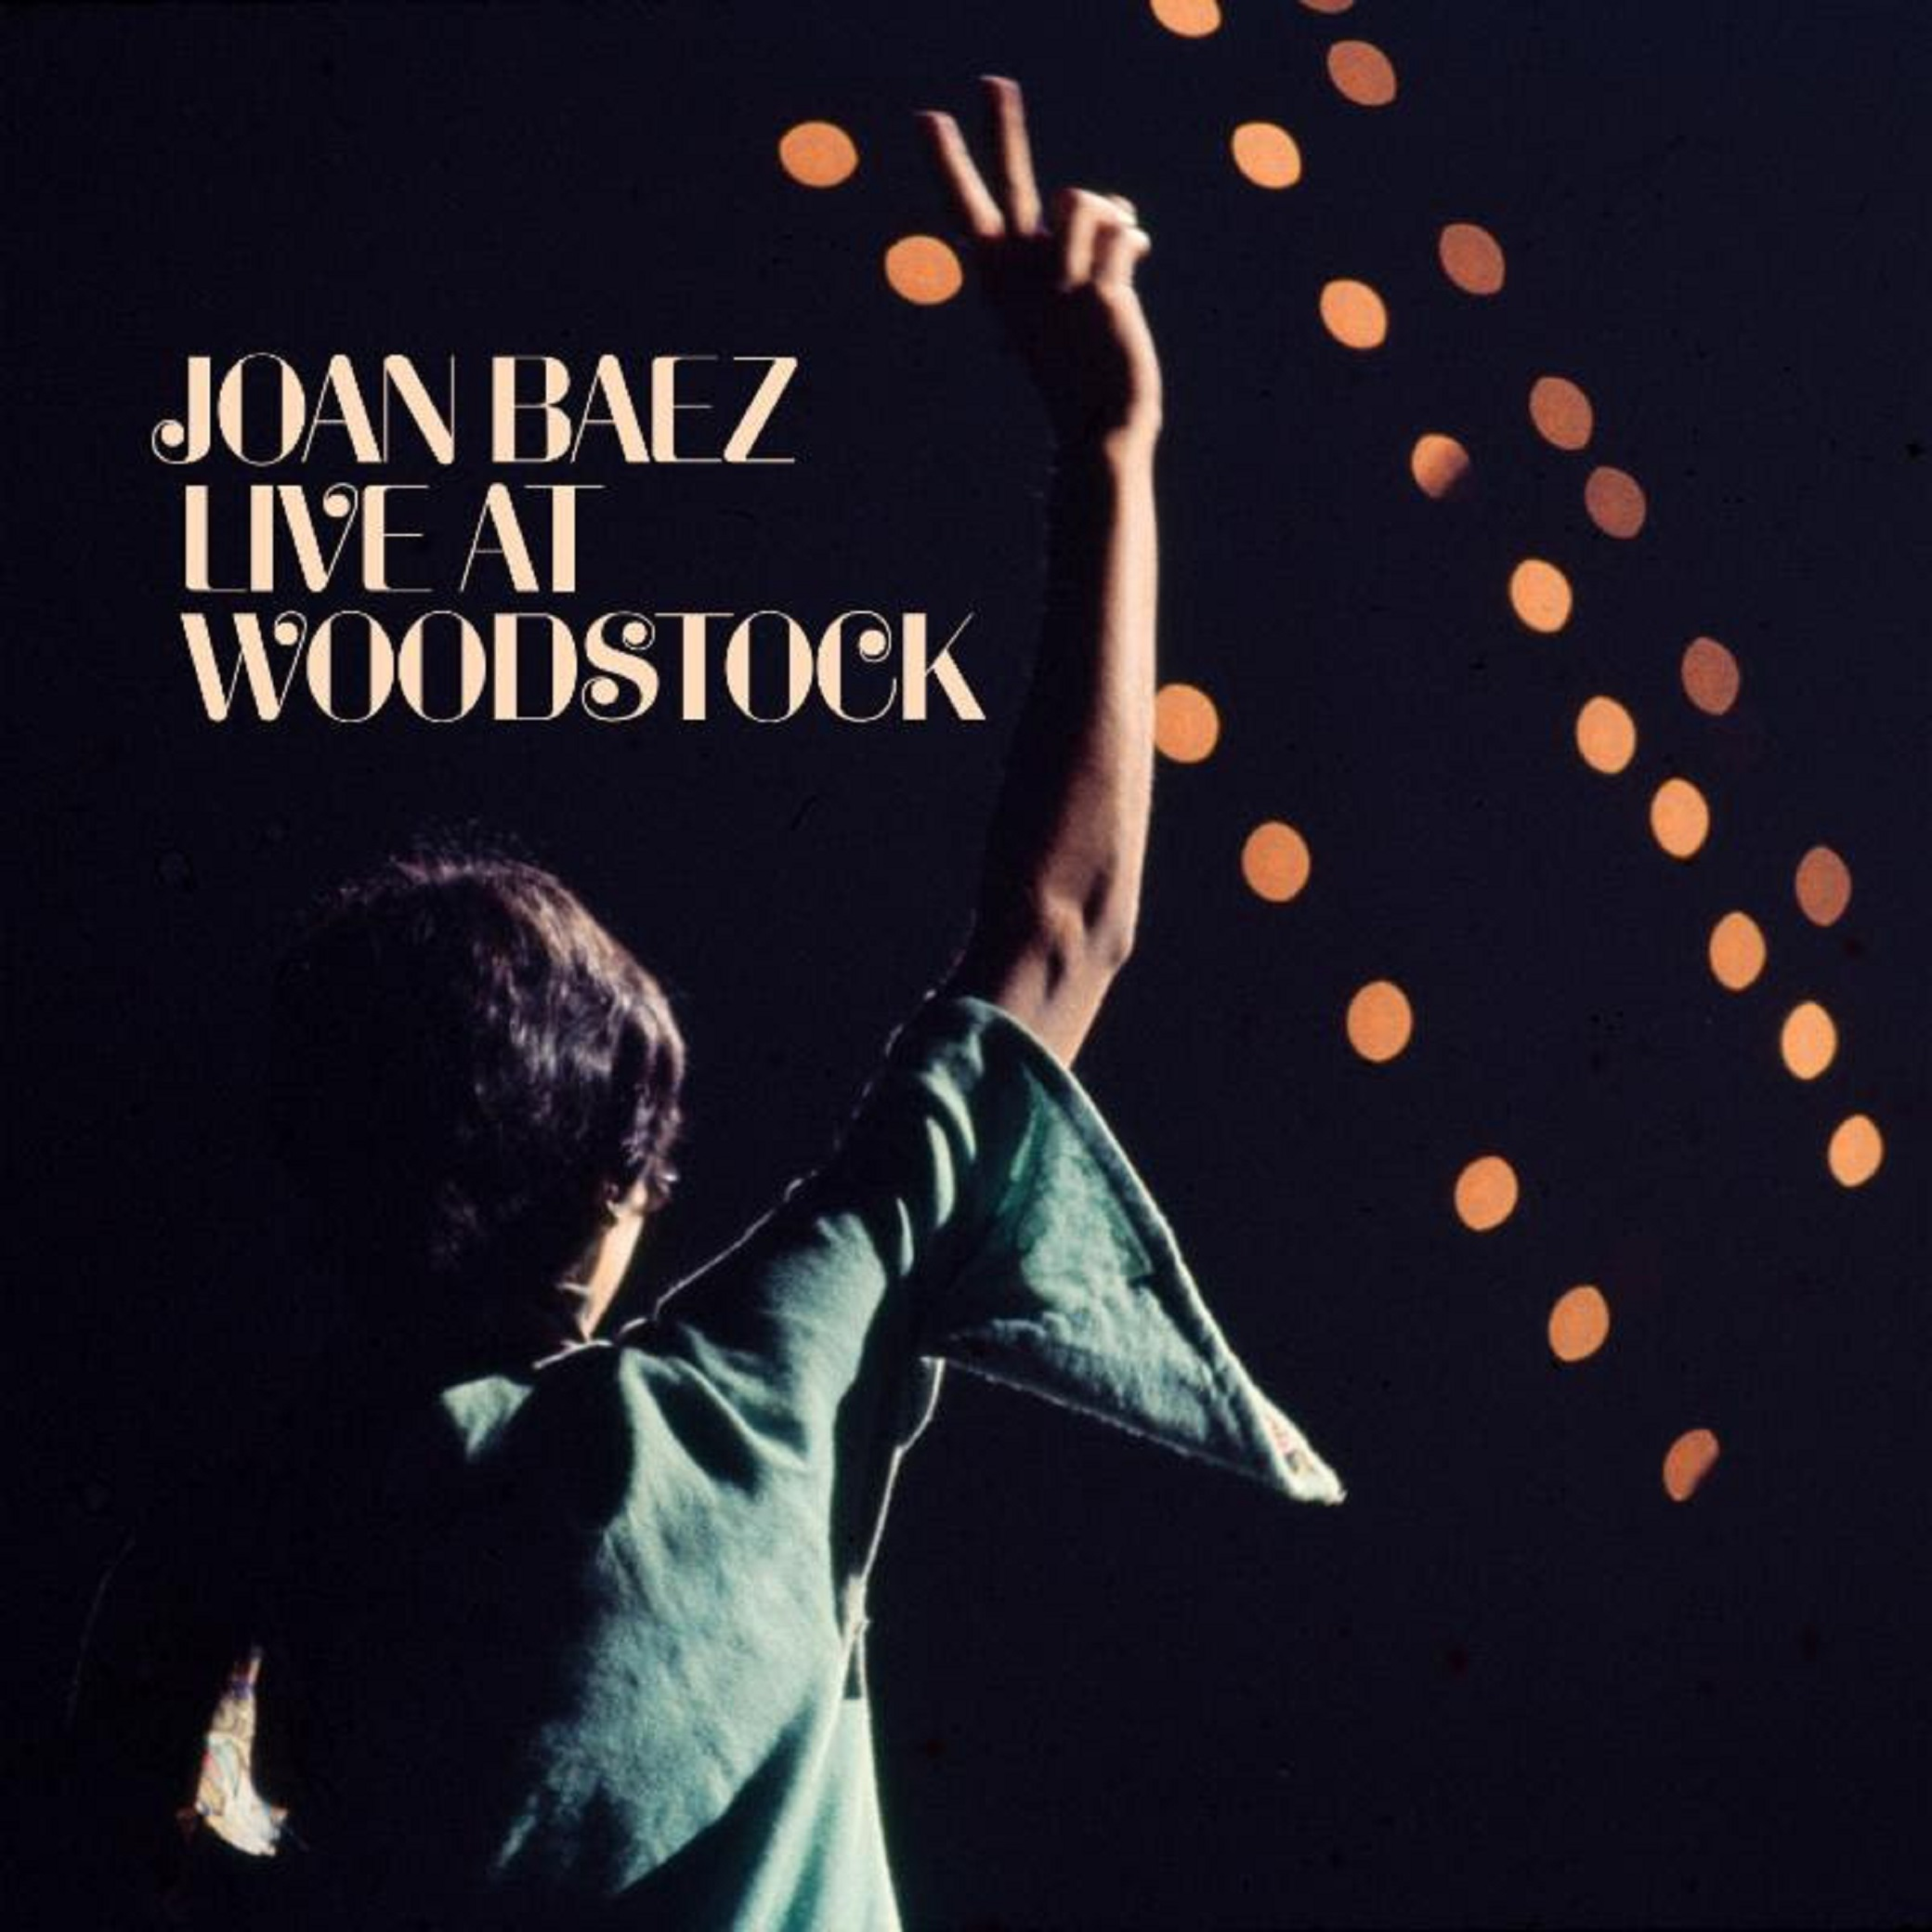 Craft Recordings releases Joan Baez 'Live At Woodstock' today (8/2)